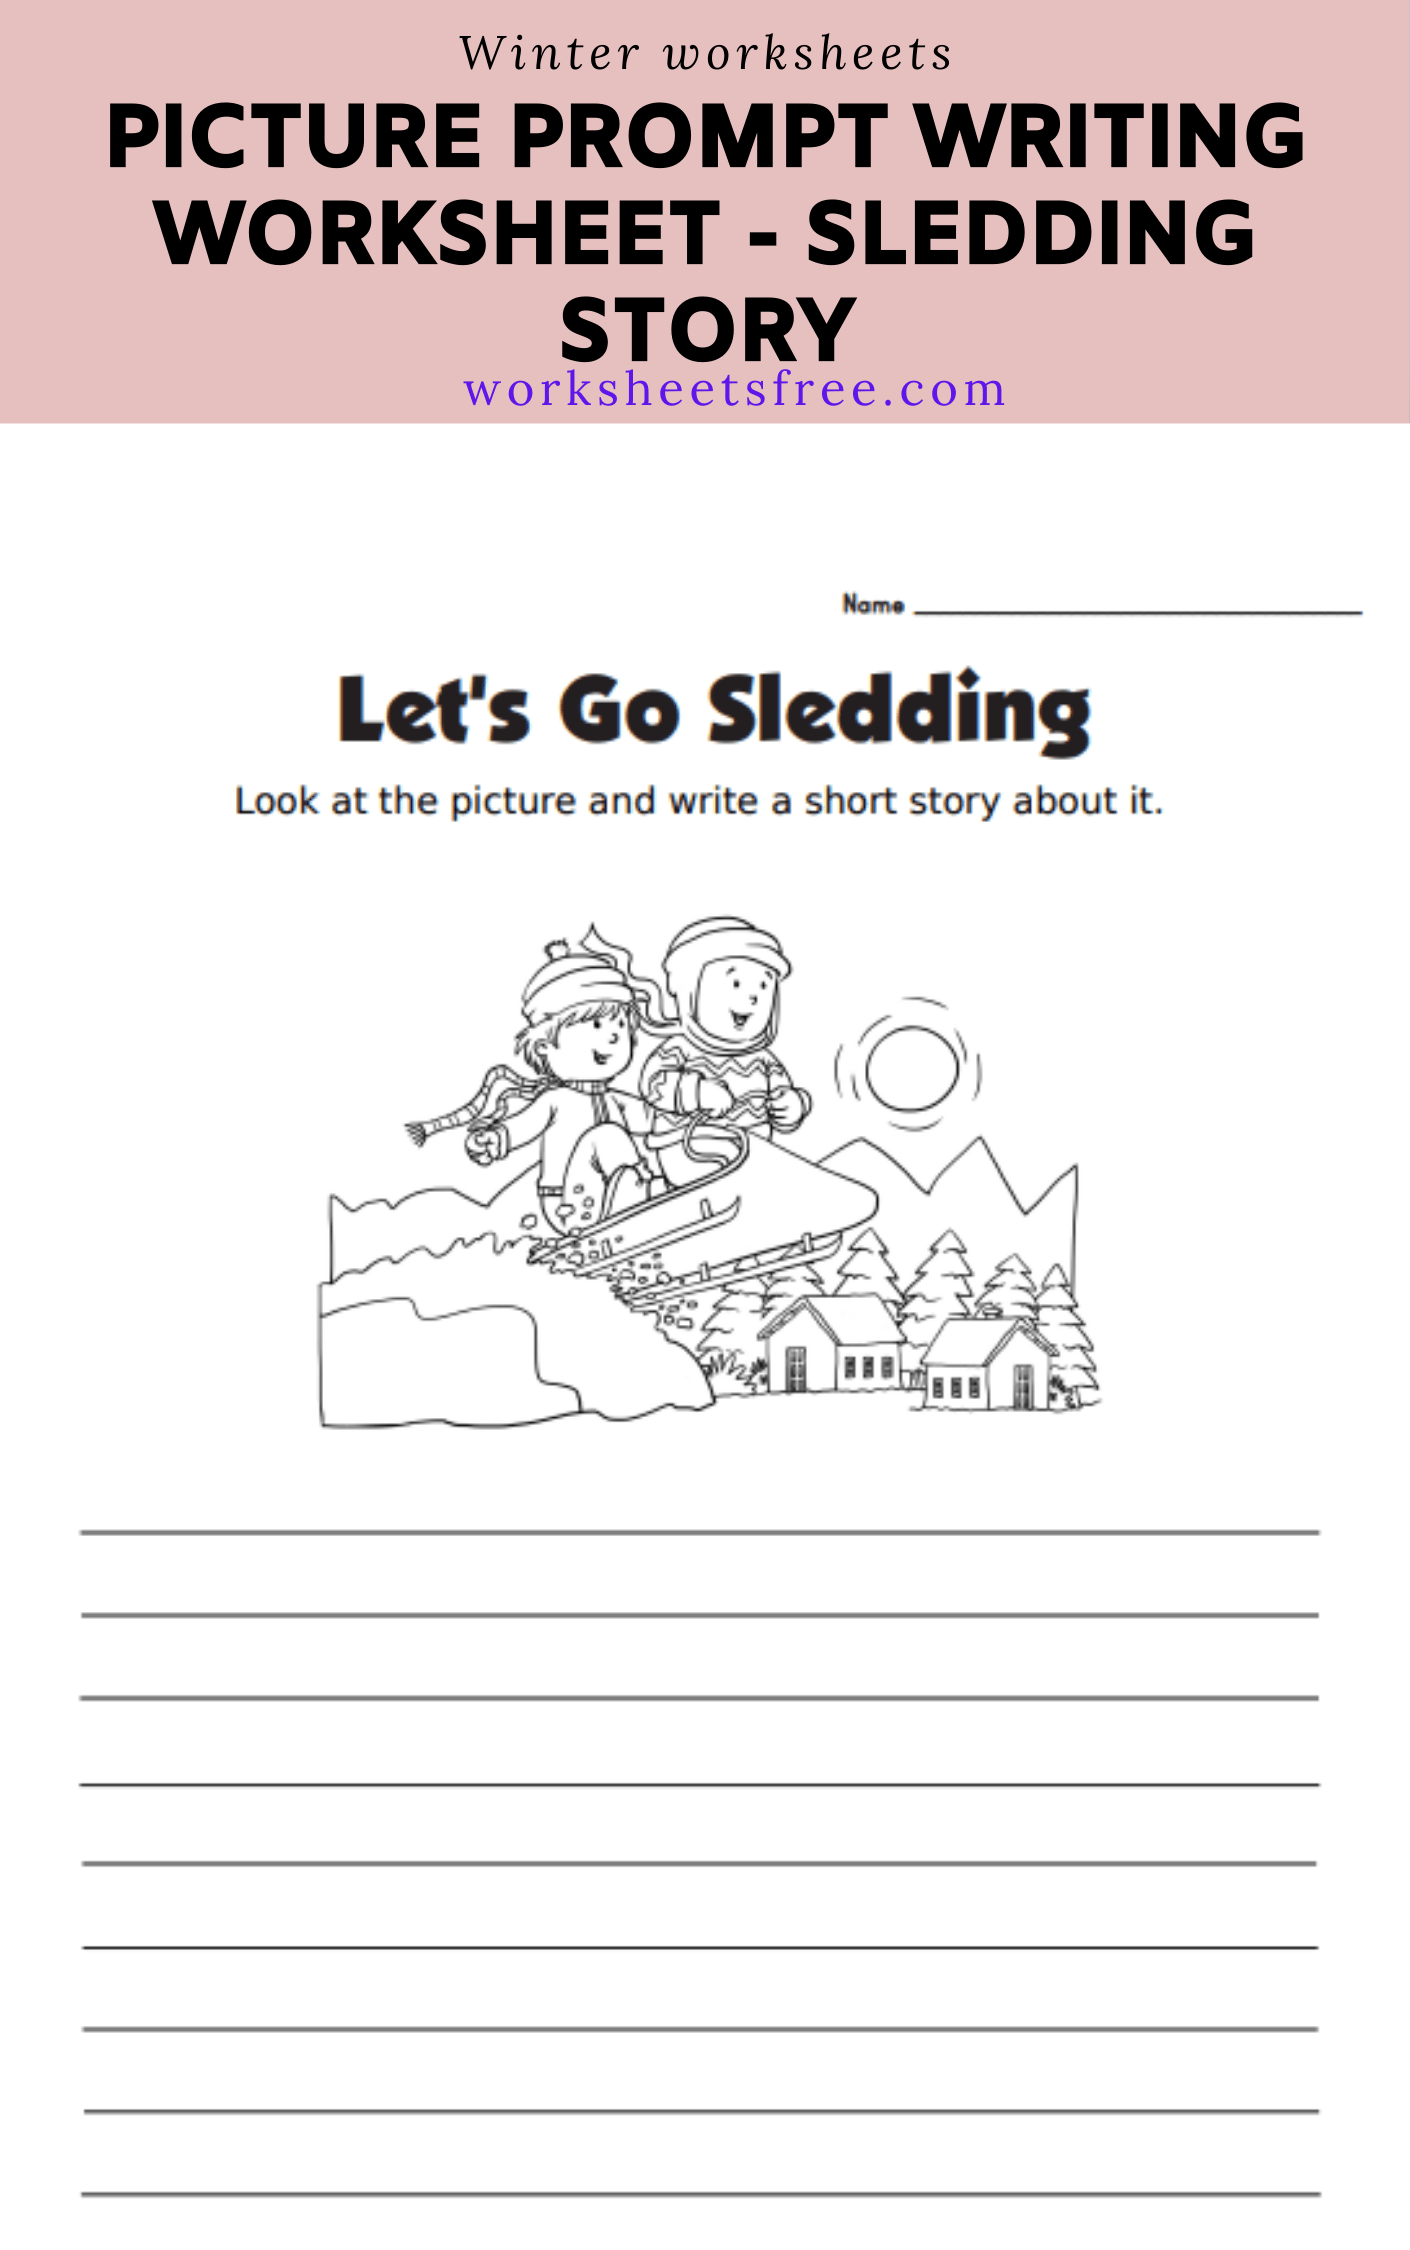 Picture Prompt Writing Worksheet - Sledding Story